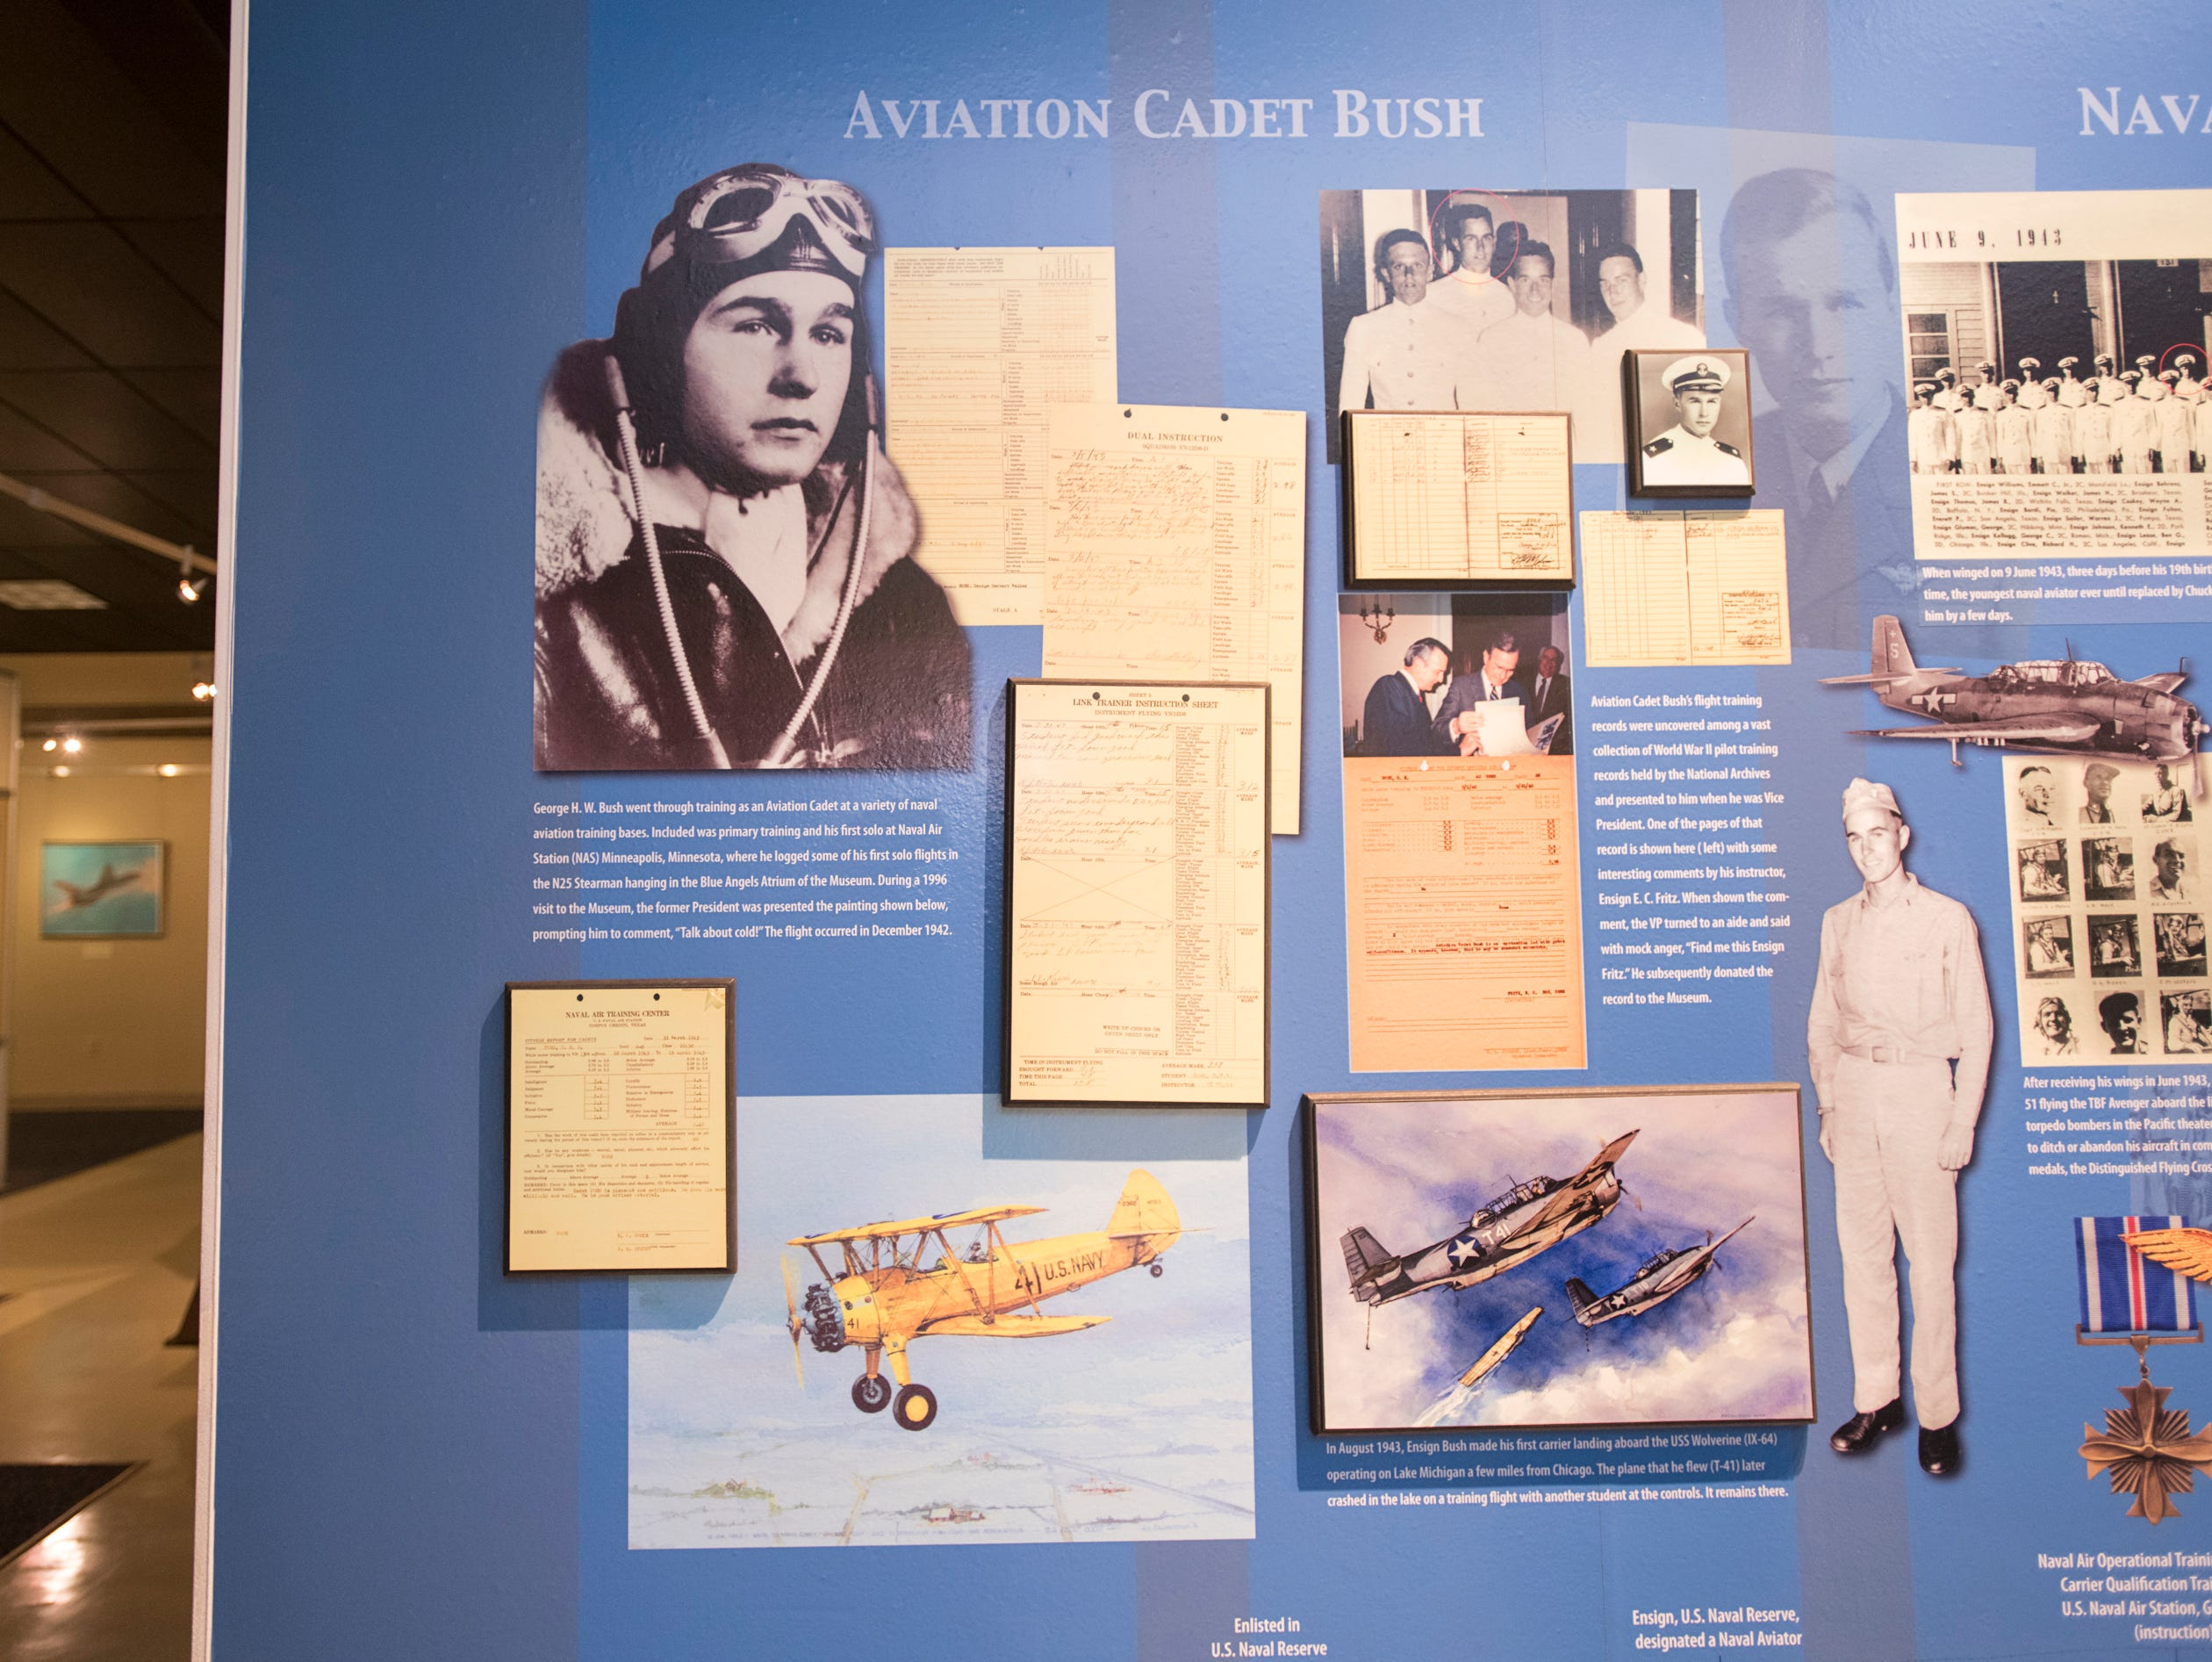 Artifacts from his time as a Naval aviator are part of the President George H.W. Bush display in the art gallery at the National Naval Aviation Museum in Pensacola on Wednesday, December 5, 2018.